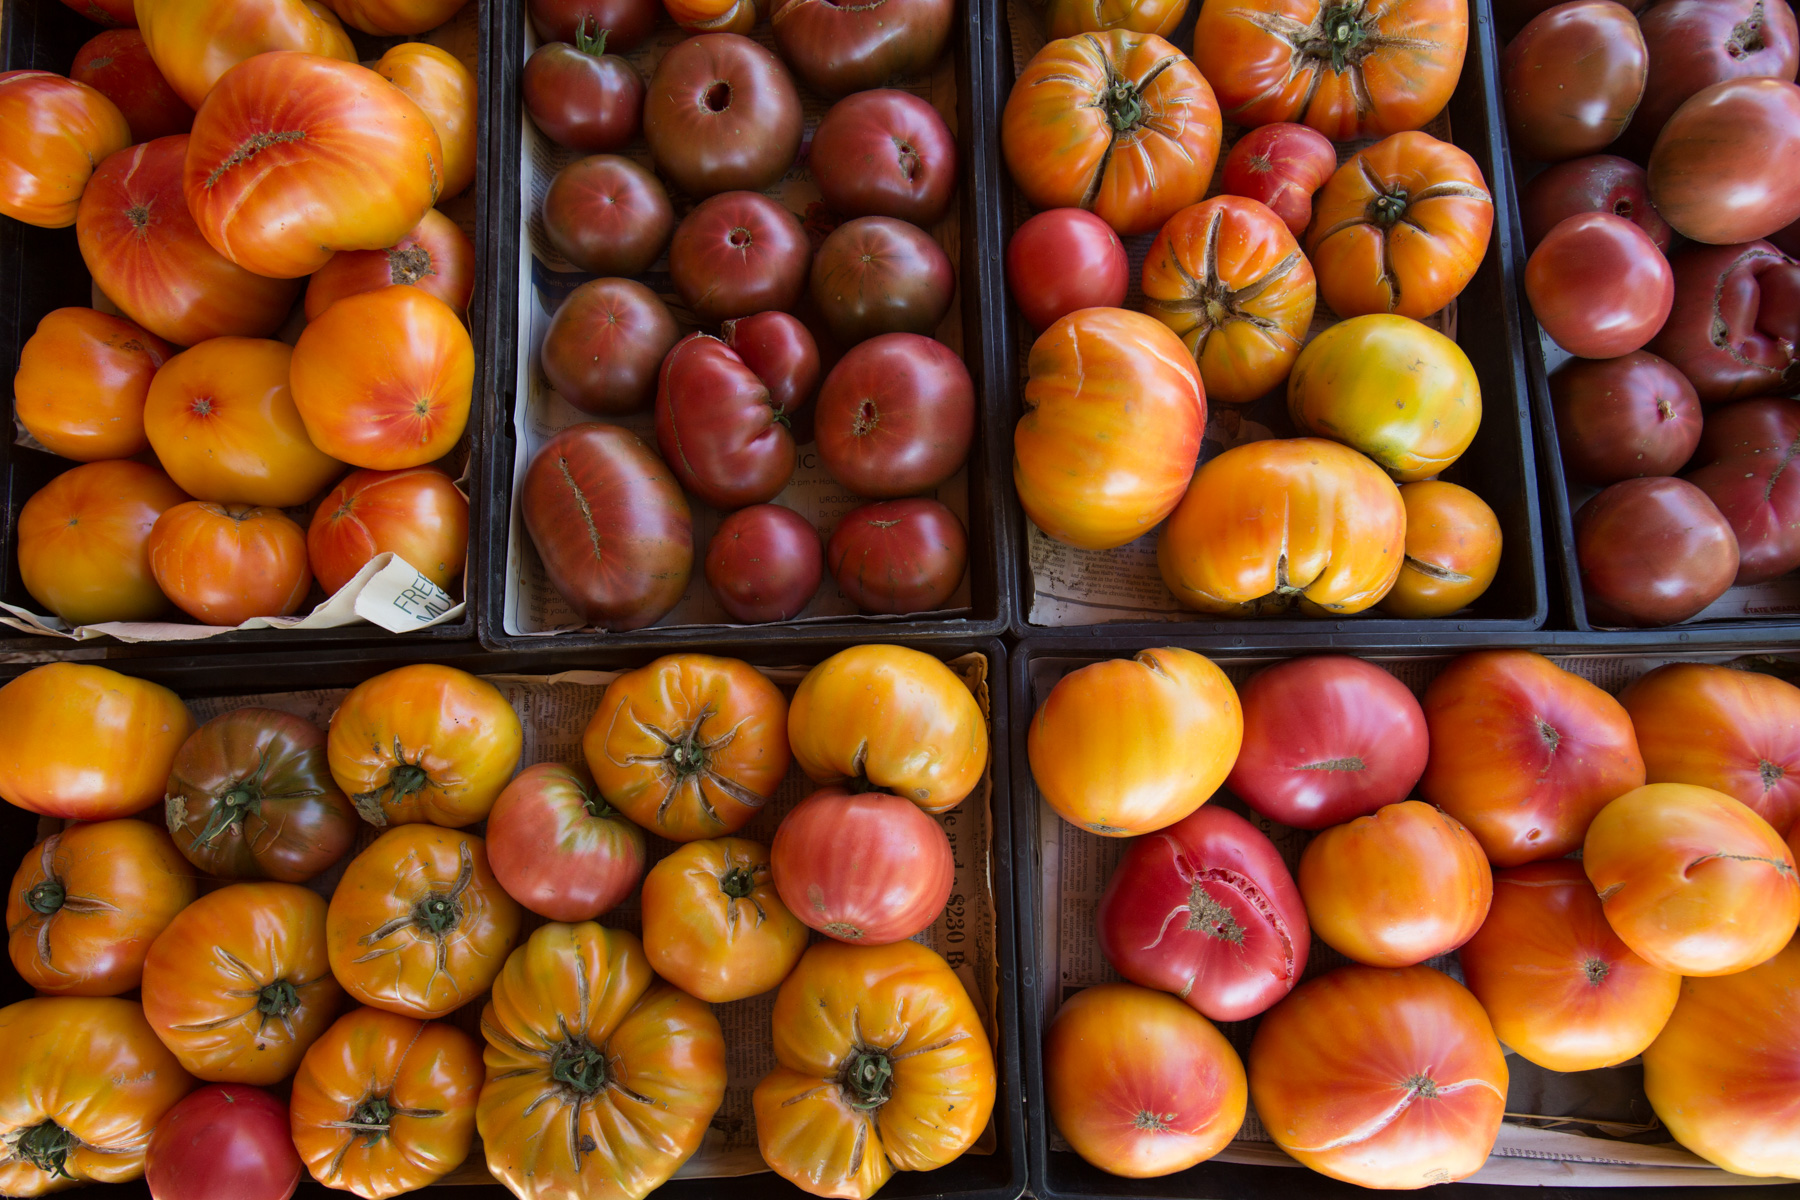 At our Garden City Harvest farms, we also grow: - Purple Cherokee, Black Krim, Sungold Cherry, Muscovitch, Glacier and more!